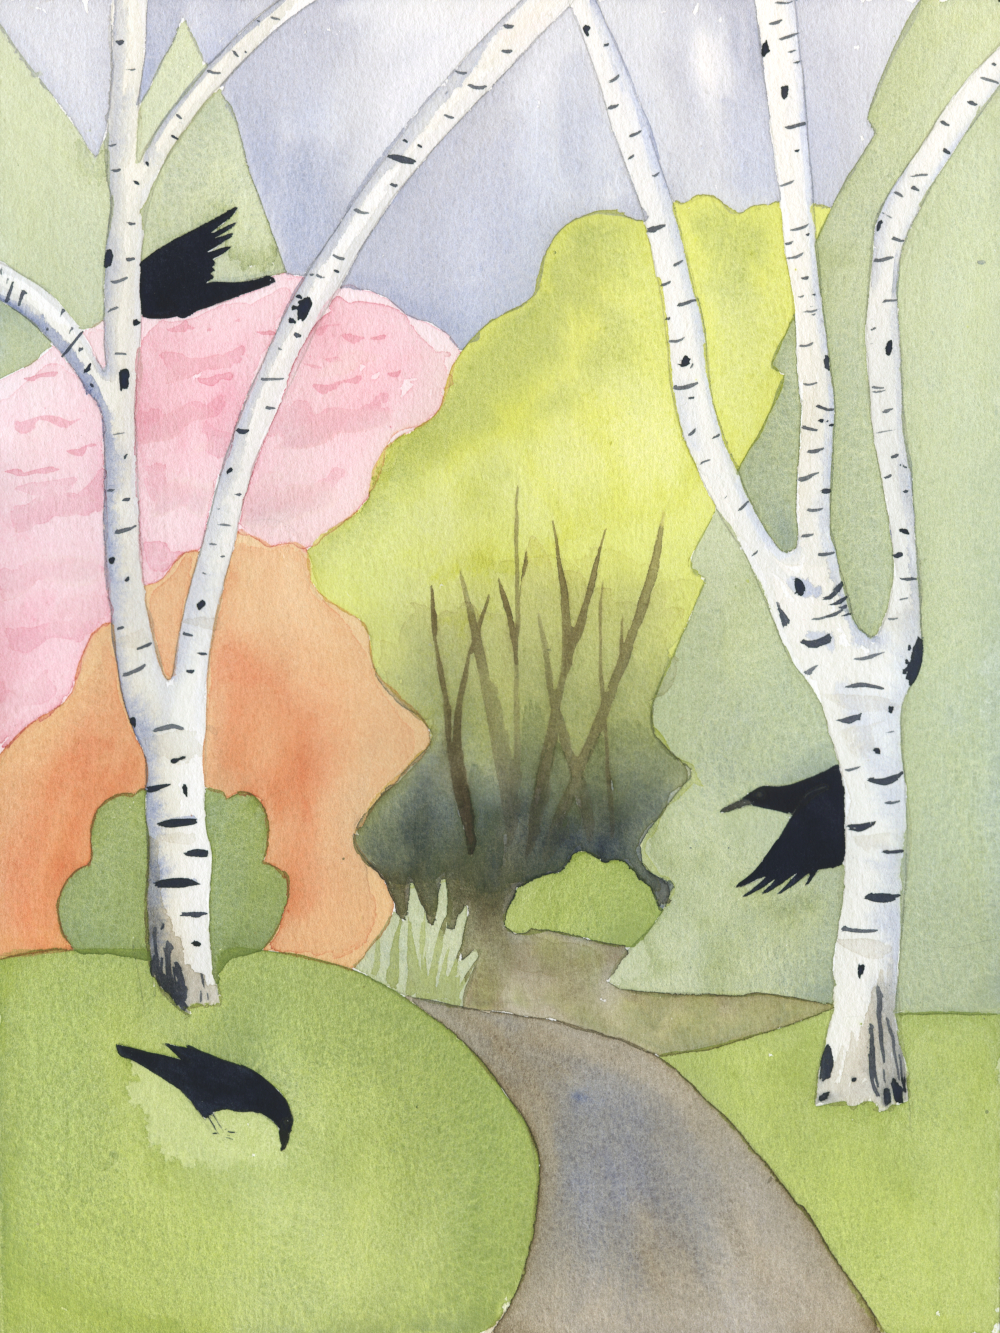 watercolor illustration of crows flying through spring trees by Alexandra Schaefers